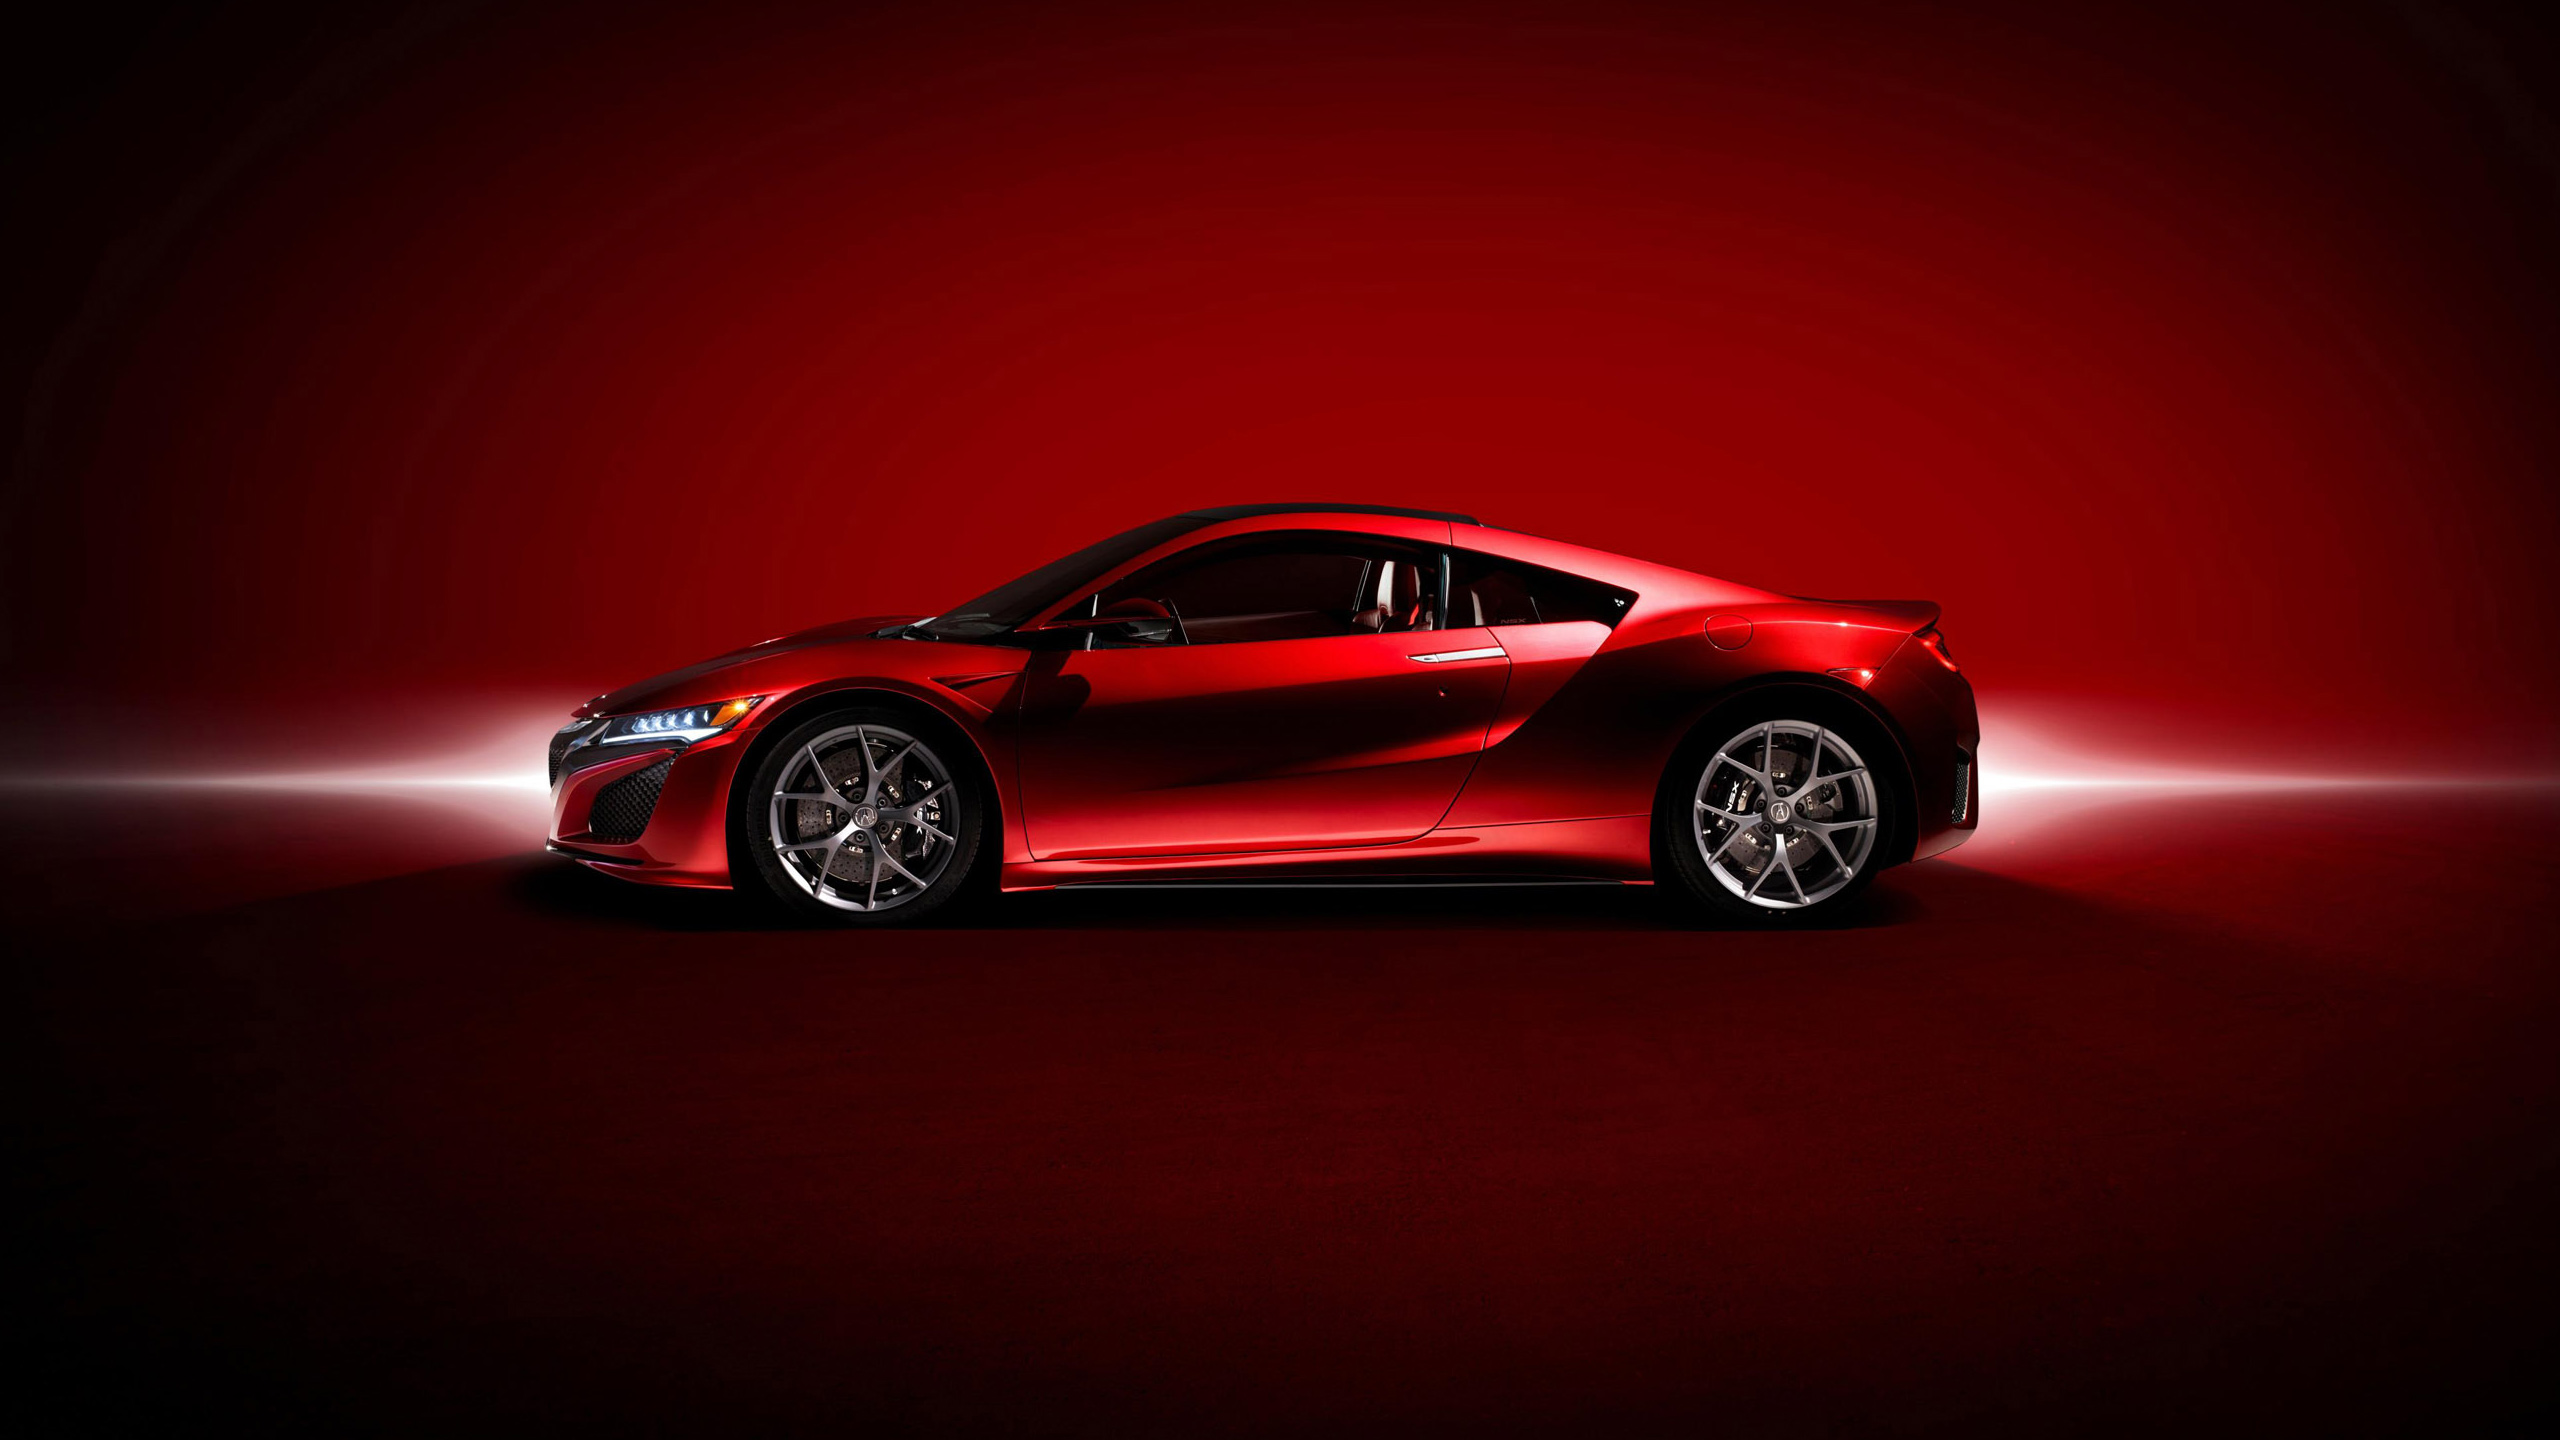 acura nsx red wallpaper 320